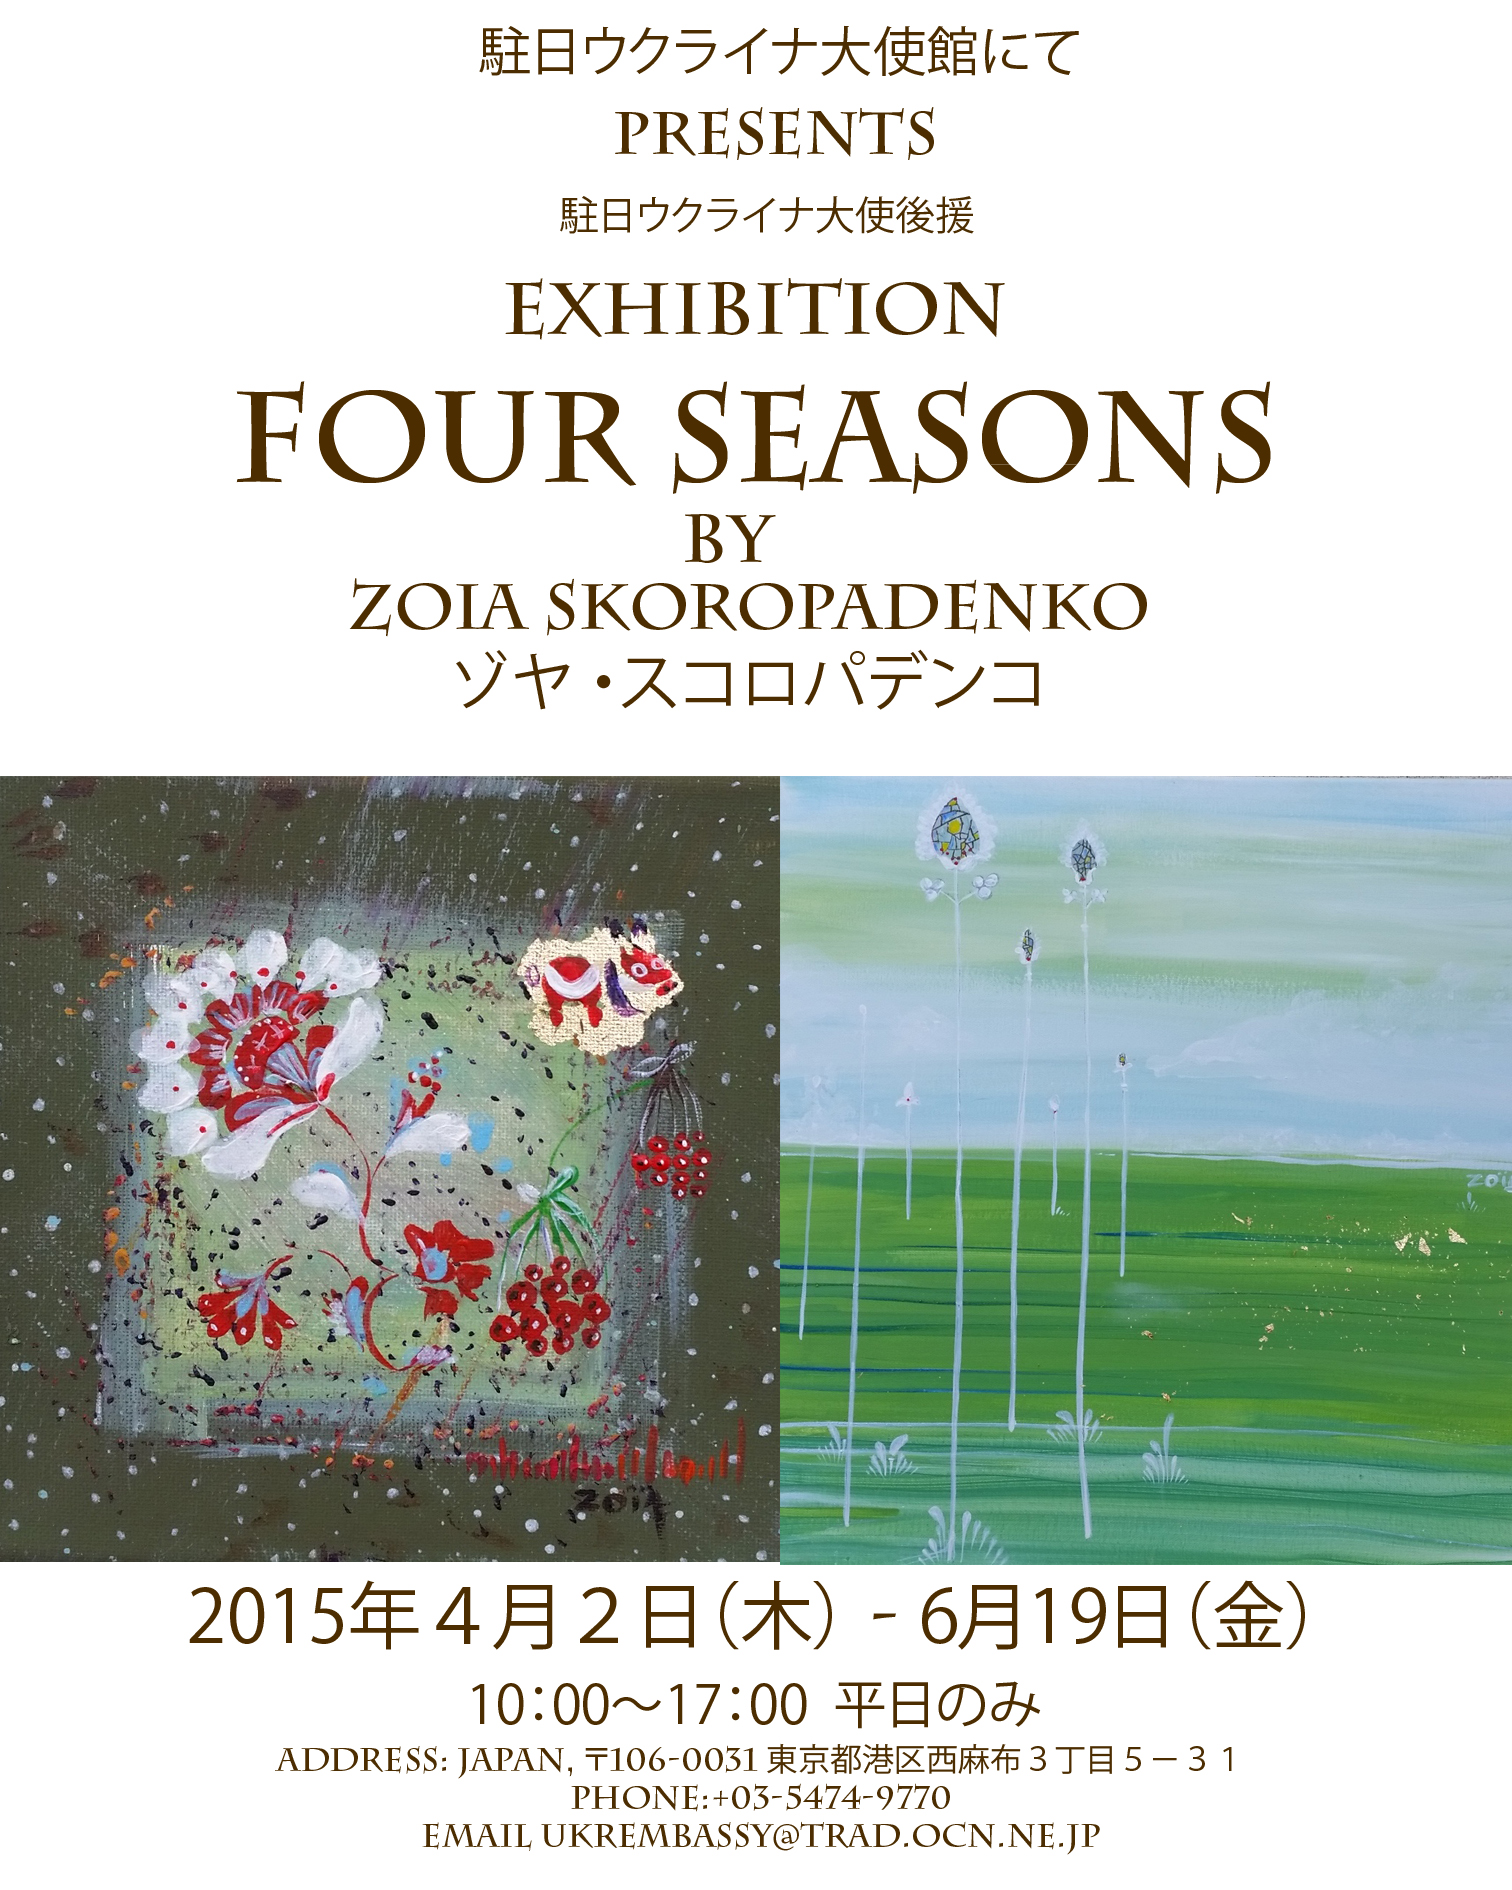 Four Seasons Exhibition in Tokyo